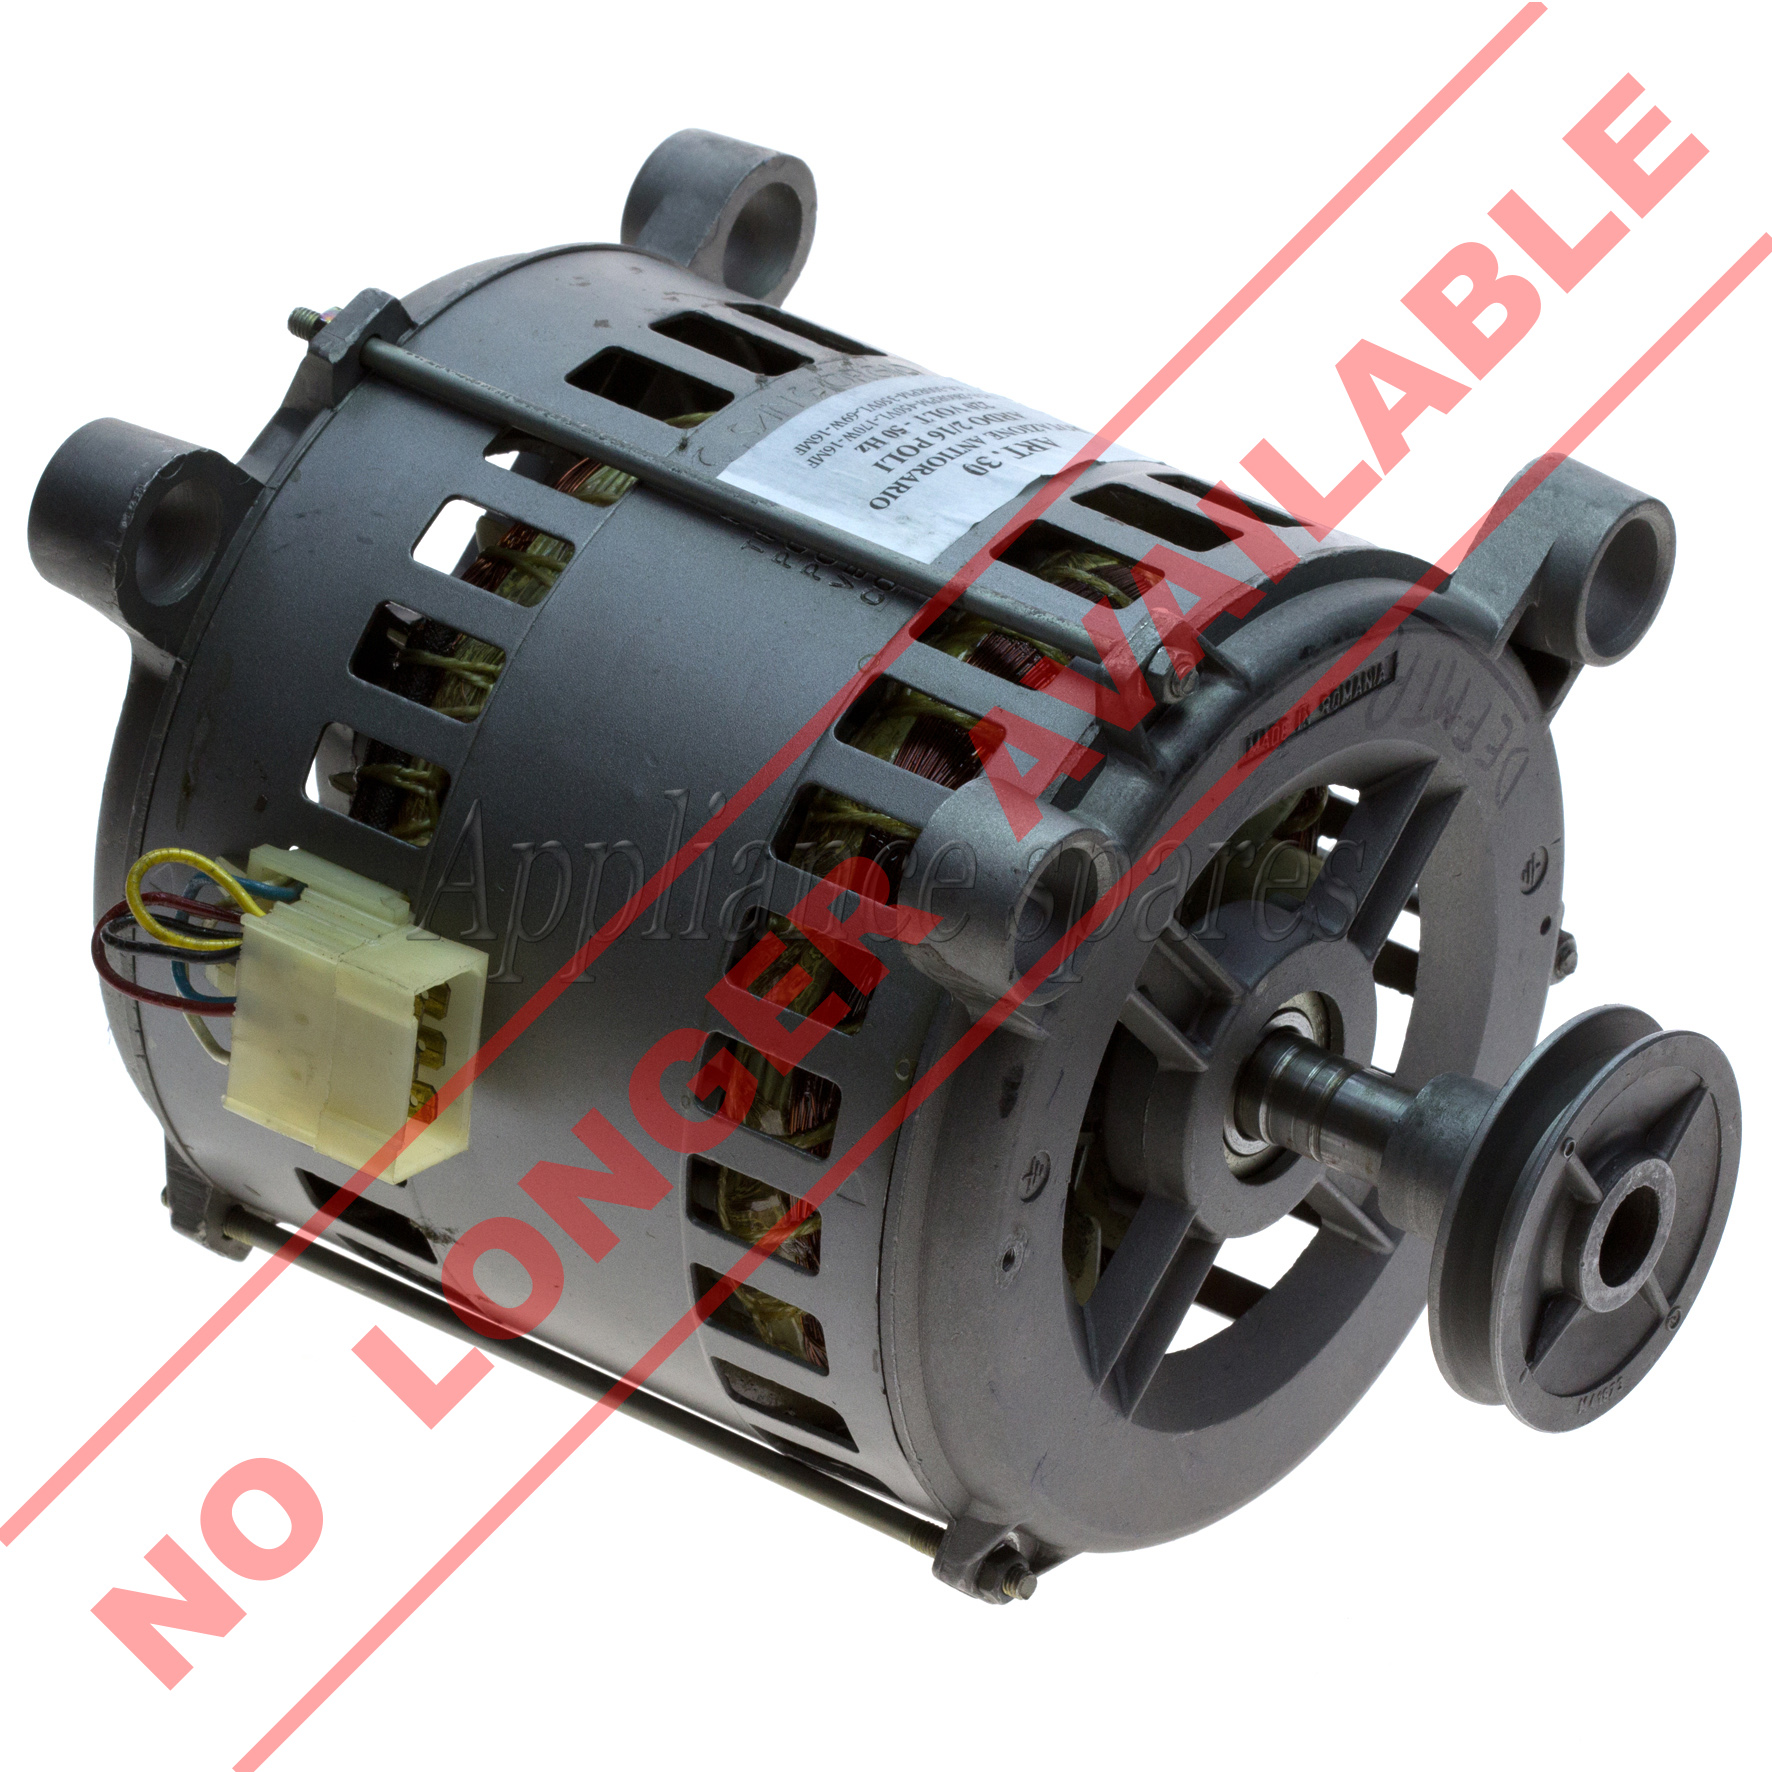 defy front loader washing machine main motor discontinued lategan rh  appliancespares co za